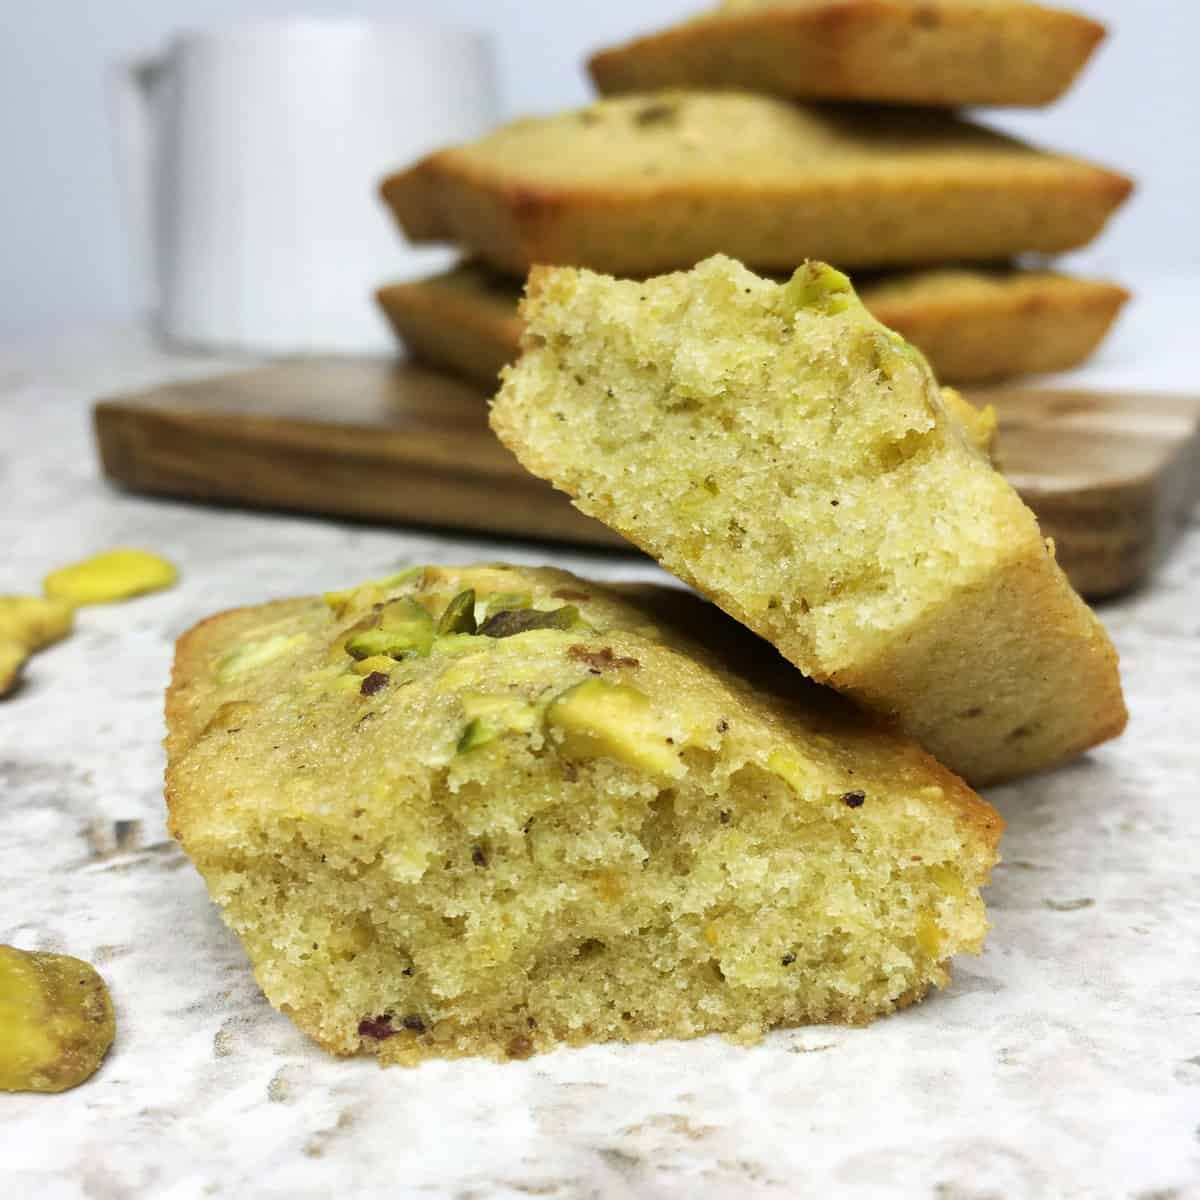 Sliced pistachio financier with the stacked cakes and a cup on a background